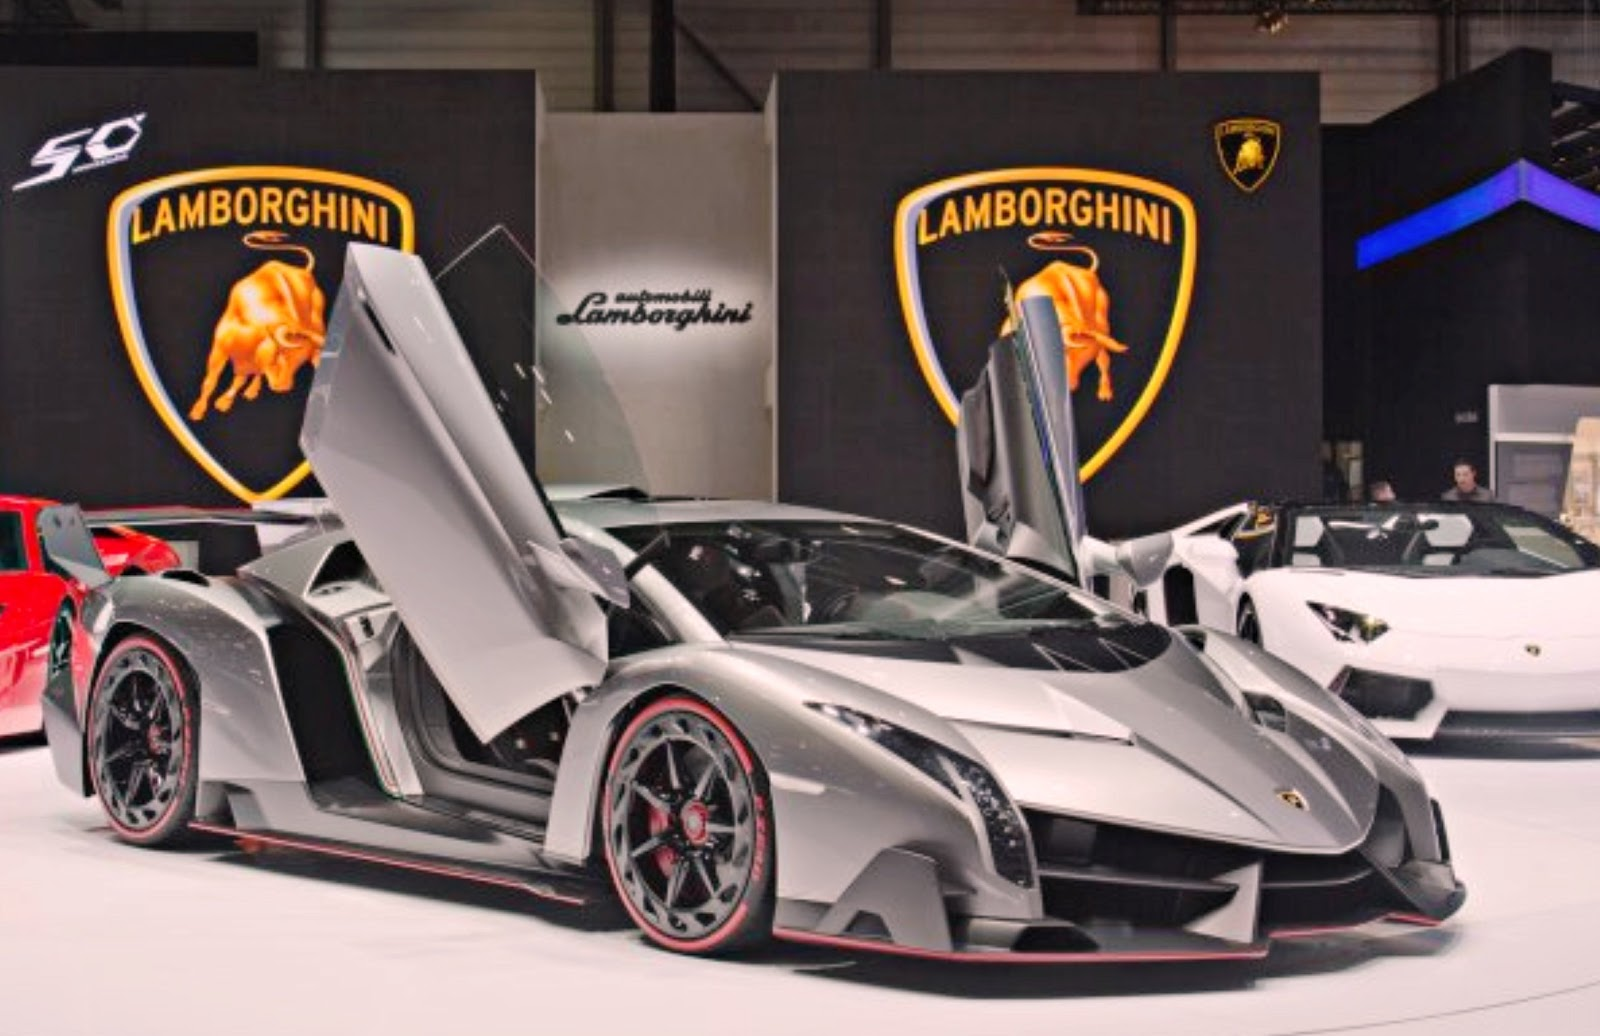 2017 Lambo Price >> 2014 Lamborghini Veneno - My Favourite Car